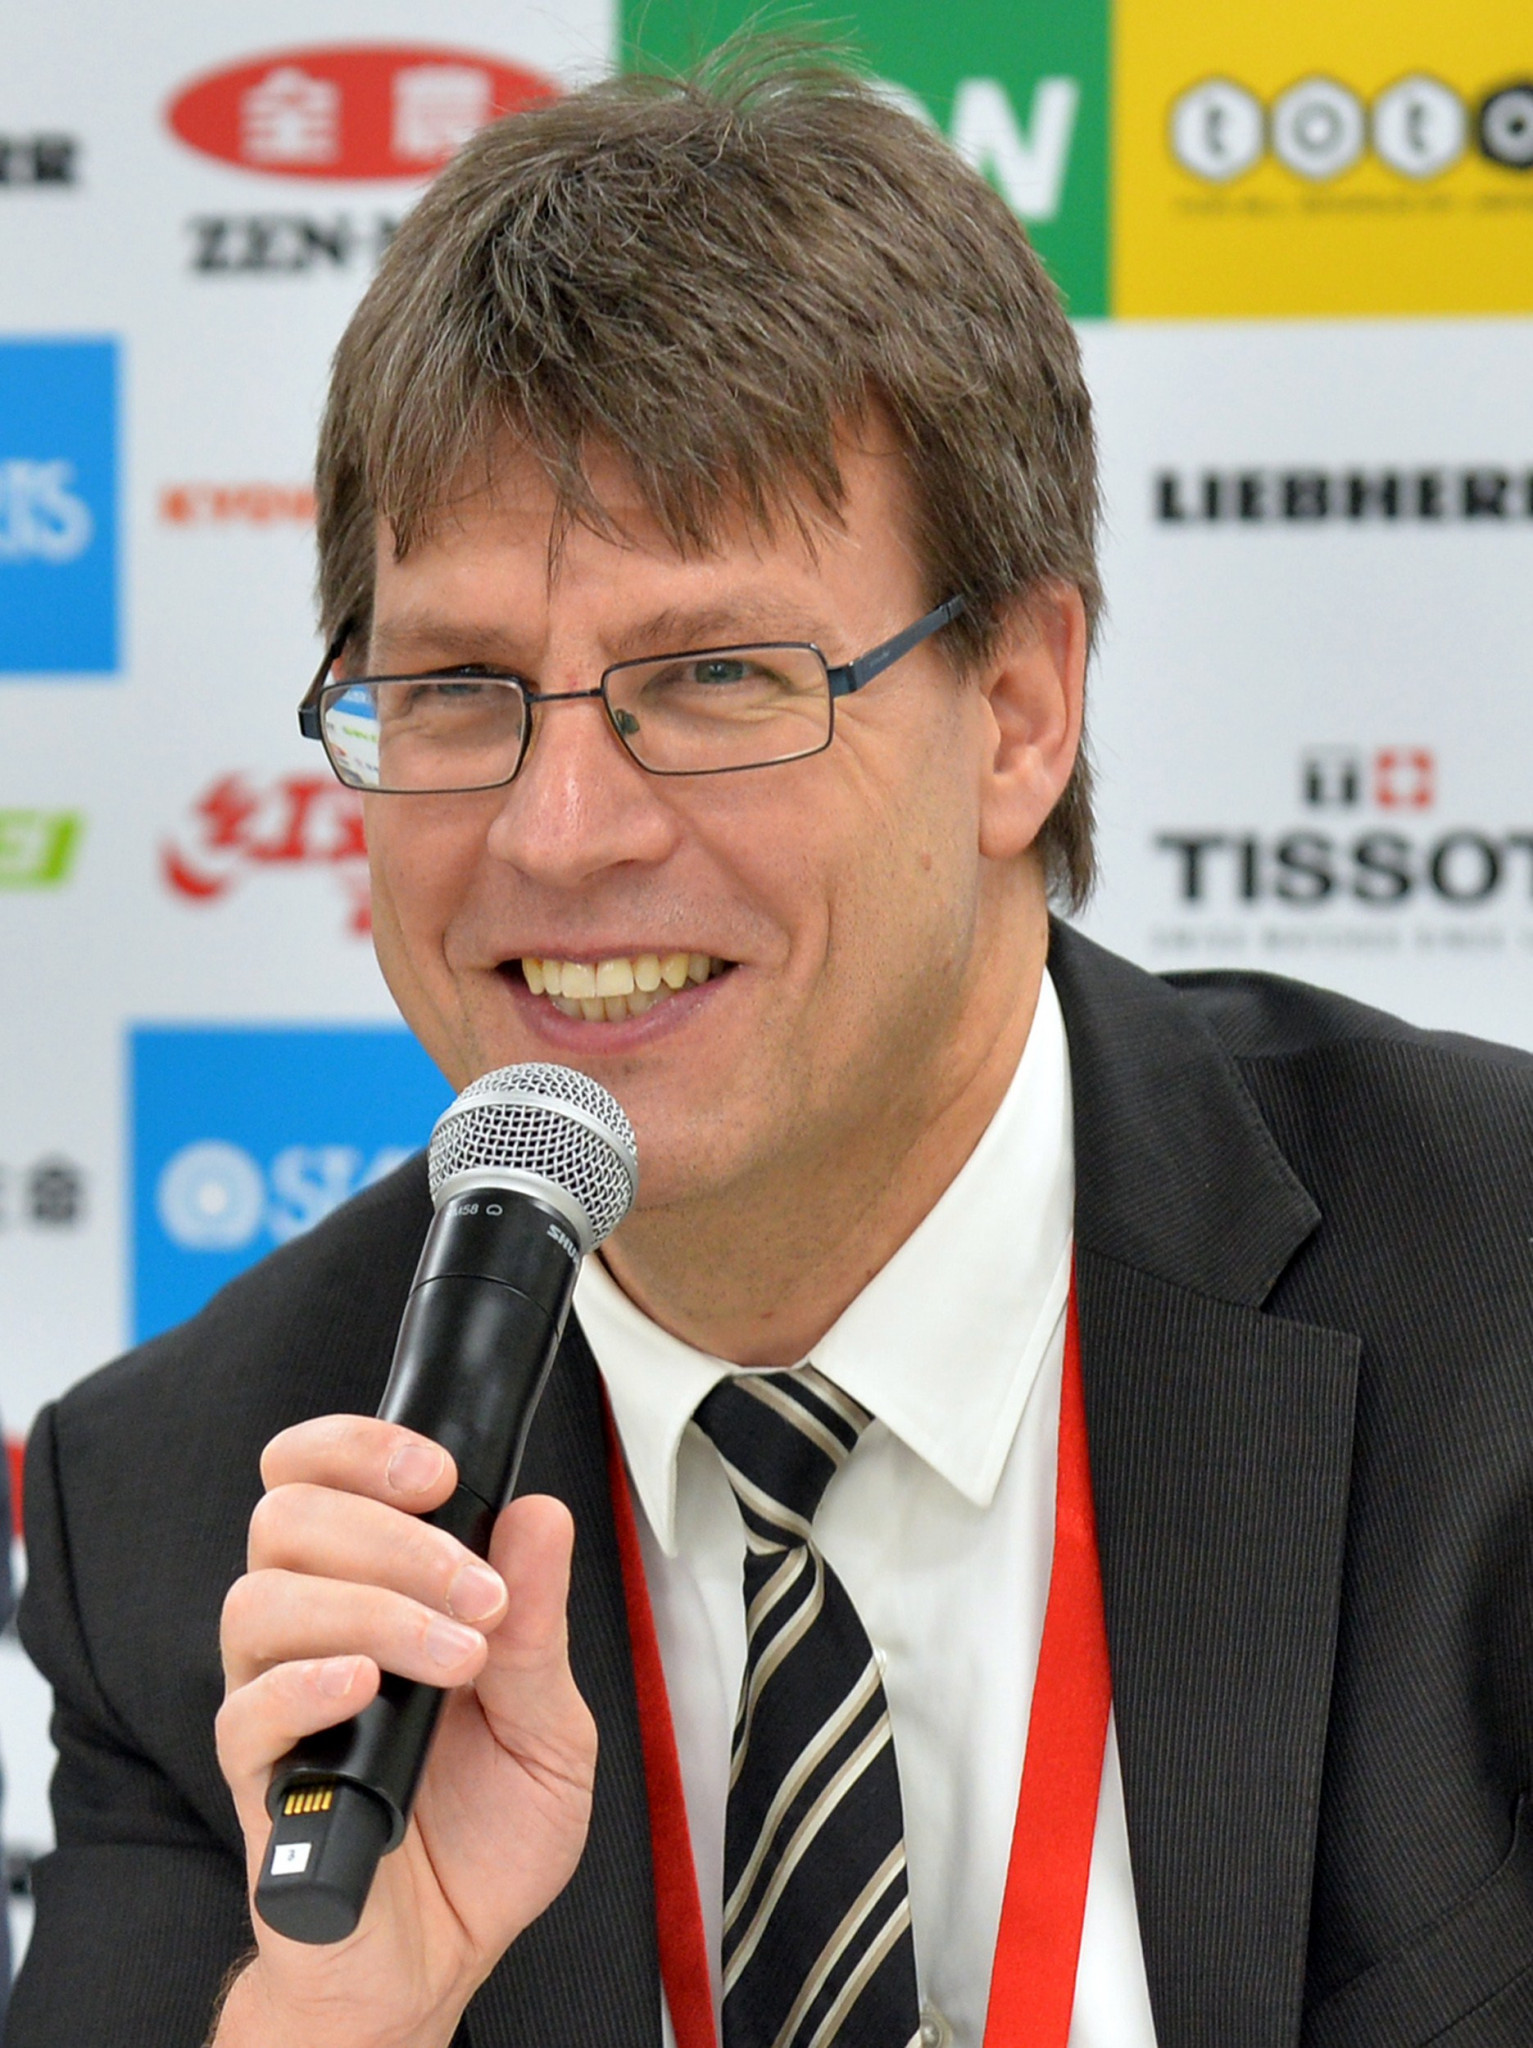 ITTF President Weikert and senior staff reduce salary during coronavirus pandemic